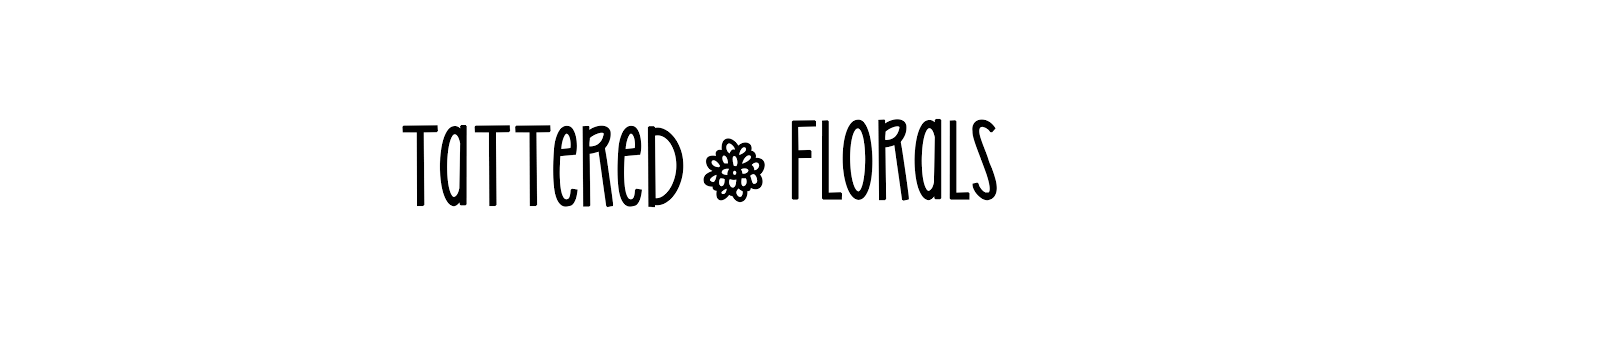 tatteredflorals